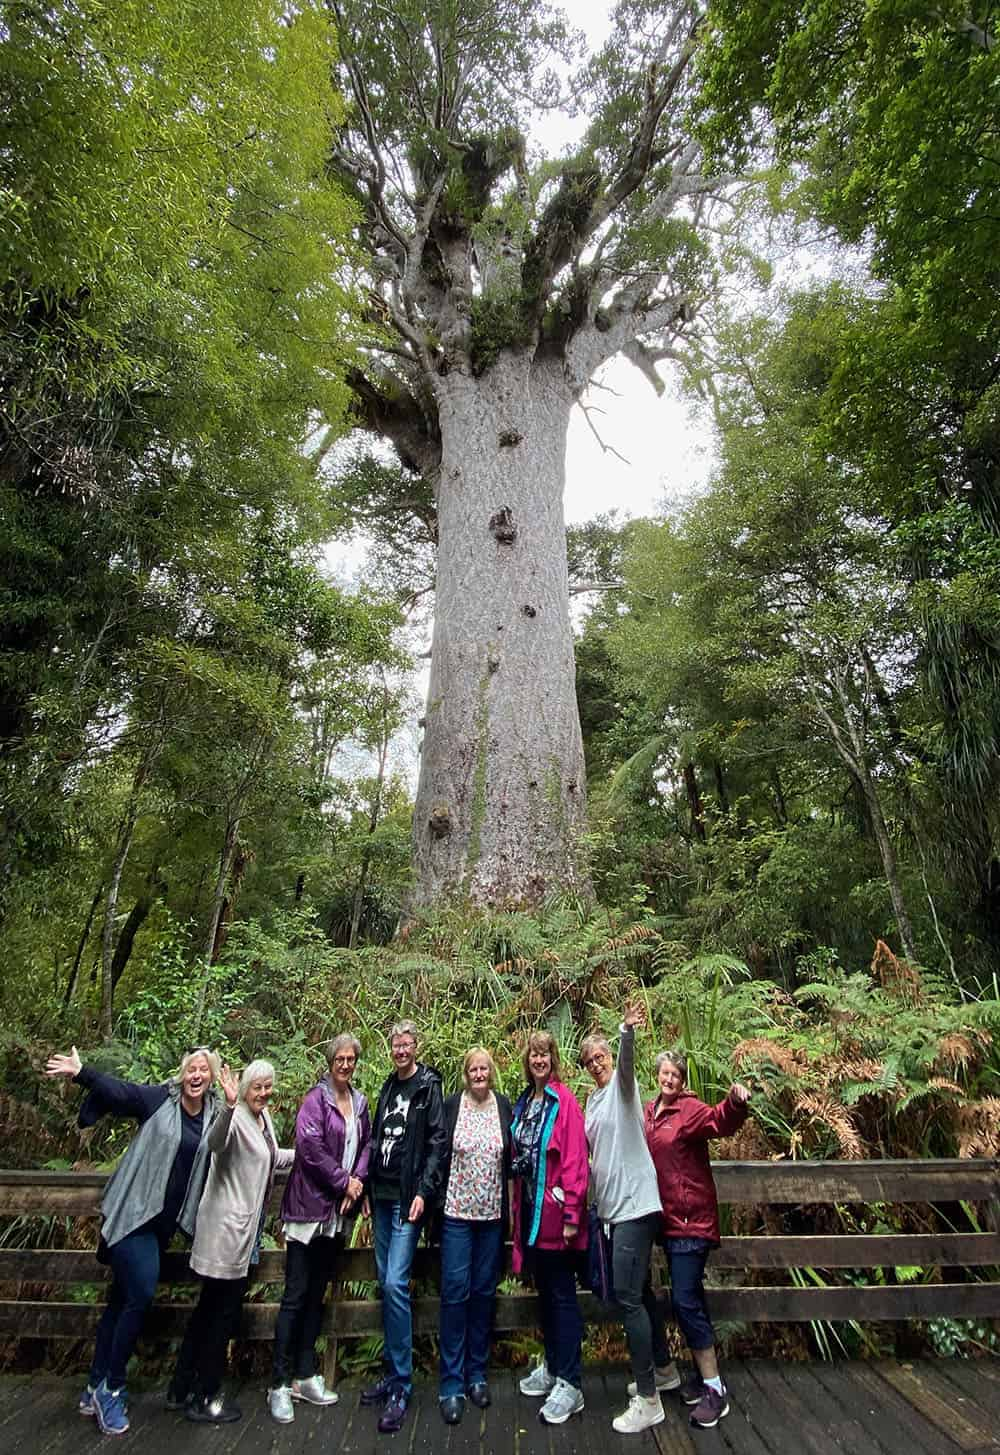 Tour group in front of Tane Mahuta